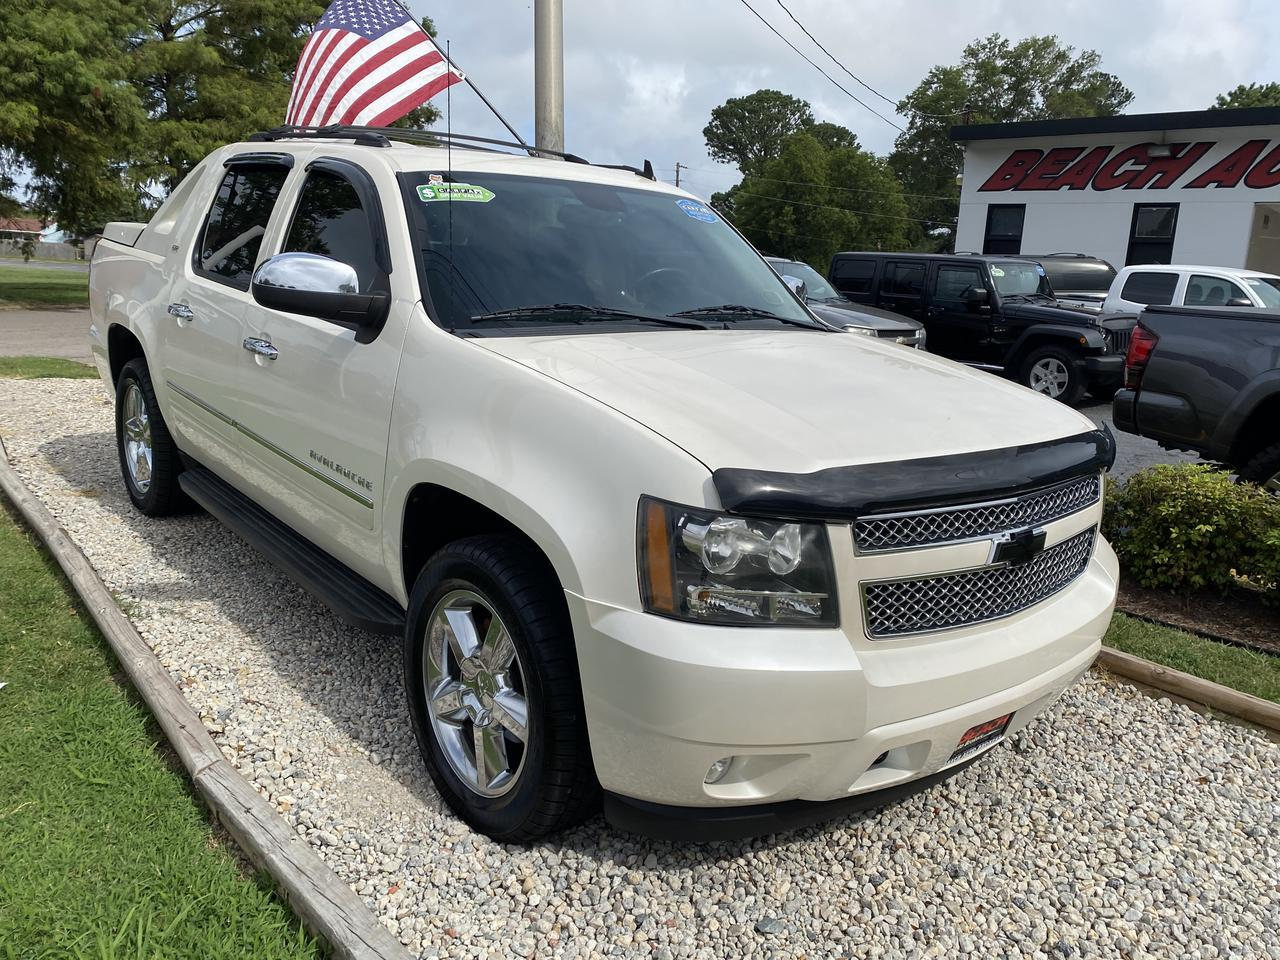 2011 CHEVROLET AVALANCHE LTZ CREW CAB 4X4, WARRANTY, LEATHER, NAV, SUNROOF, HEATED/COOLED SEATS, BACKUP CAM, CLEAN CARFAX! Norfolk VA